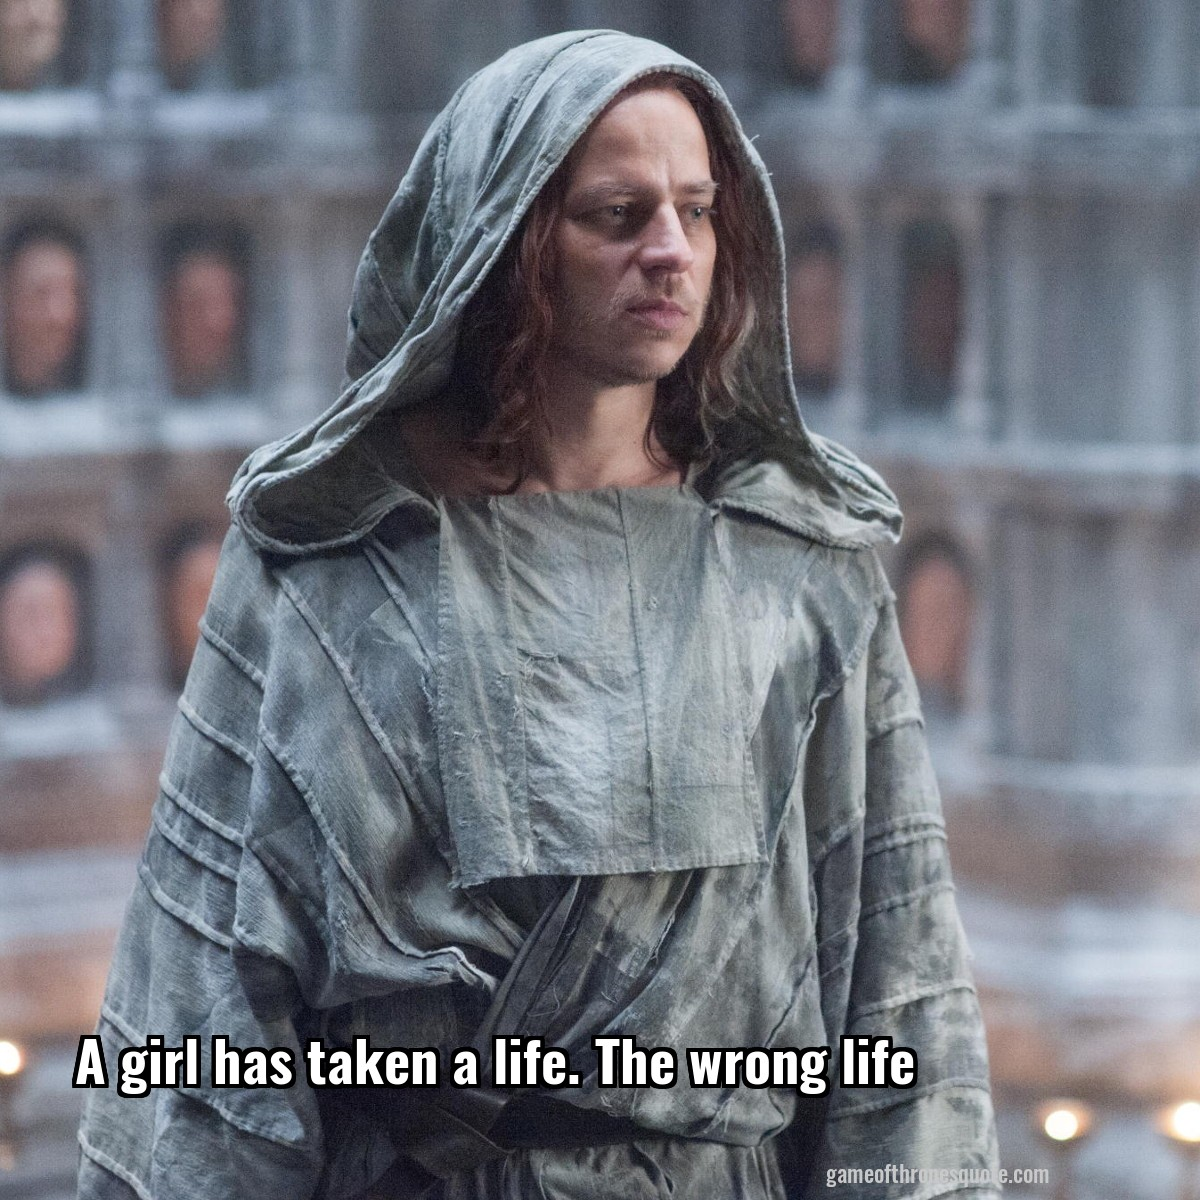 Jaqen Hghar A Girl Has Taken A Life The Wrong Life Game Of